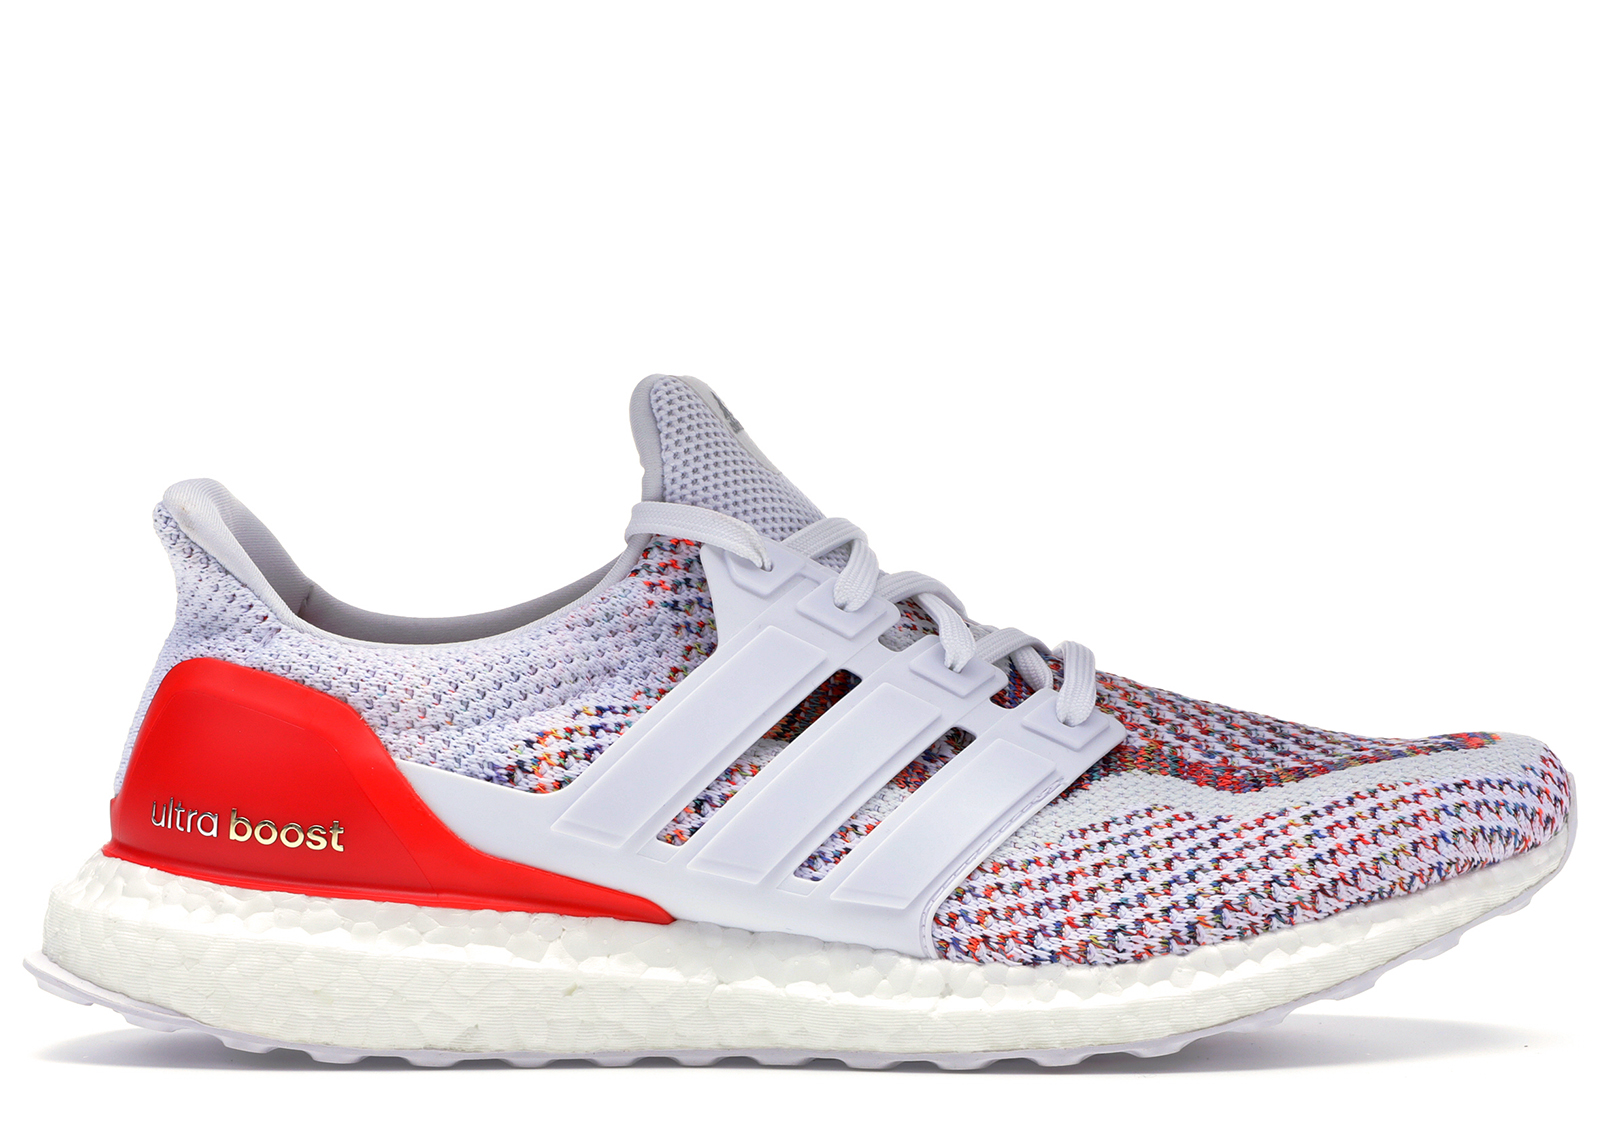 Details about Adidas Ultra Boost 2.0 Multi Color Size 9.5 UltraBoost 1.0 3.0 NMD BB3911